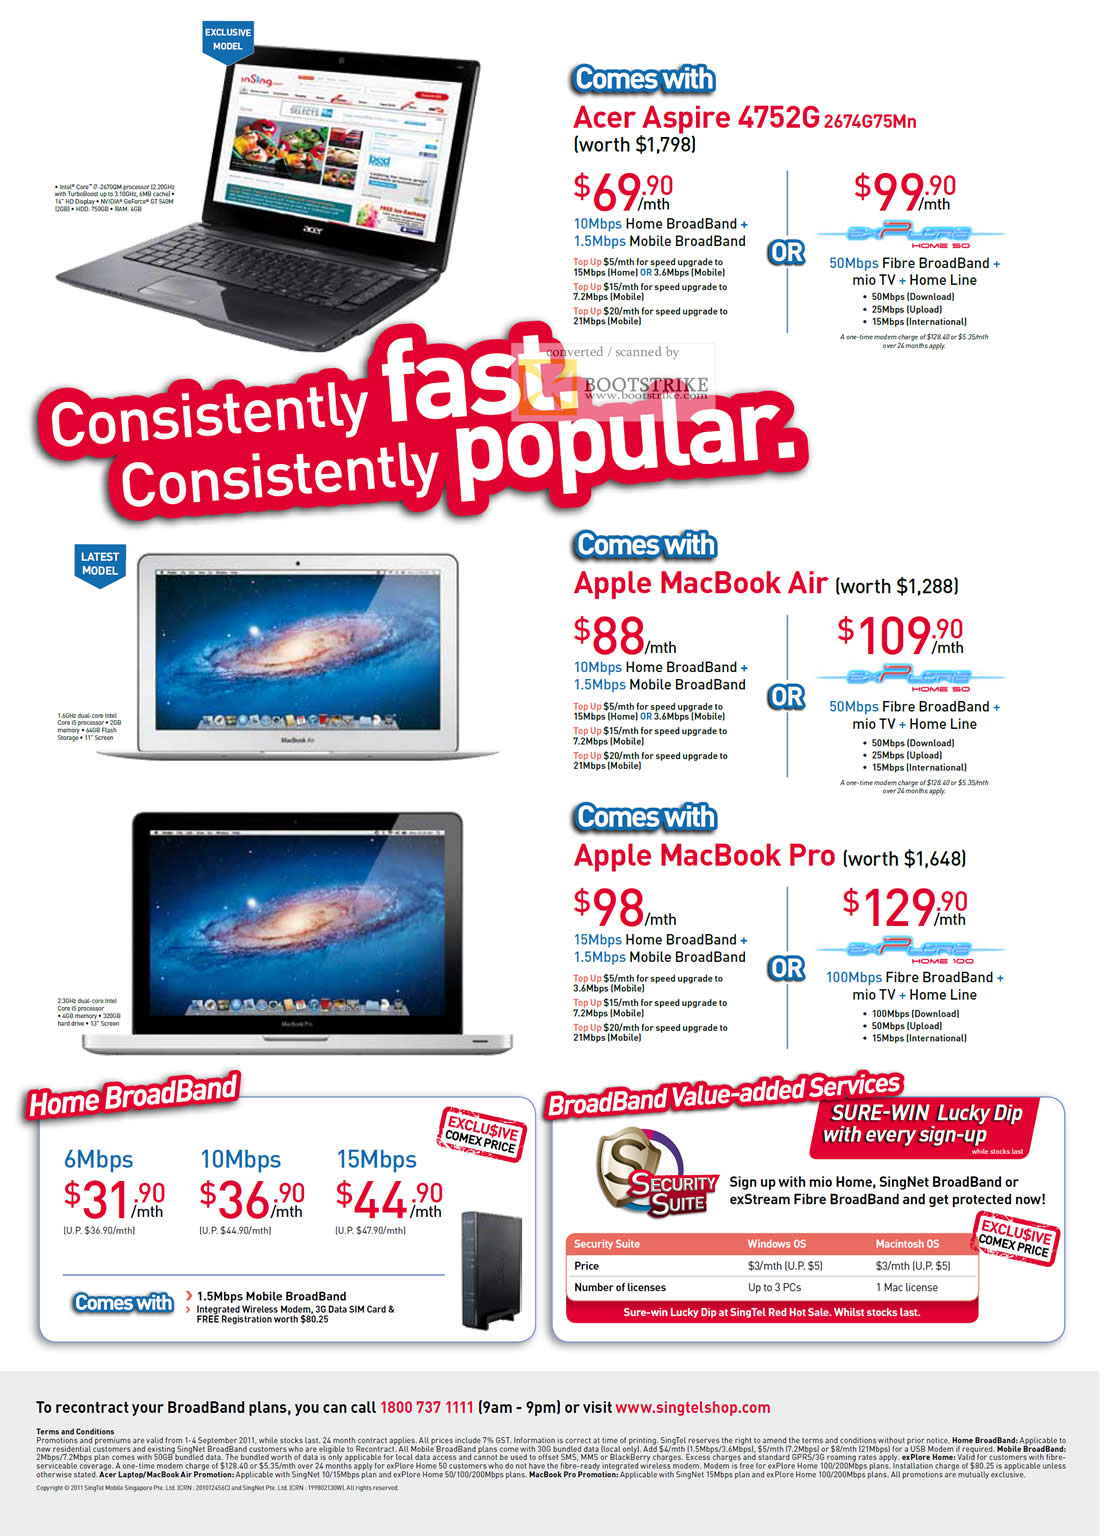 COMEX 2011 price list image brochure of Singtel Broadband Home Mobile Acer Aspire 4752G 2674G75Mn Apple MacBook Air